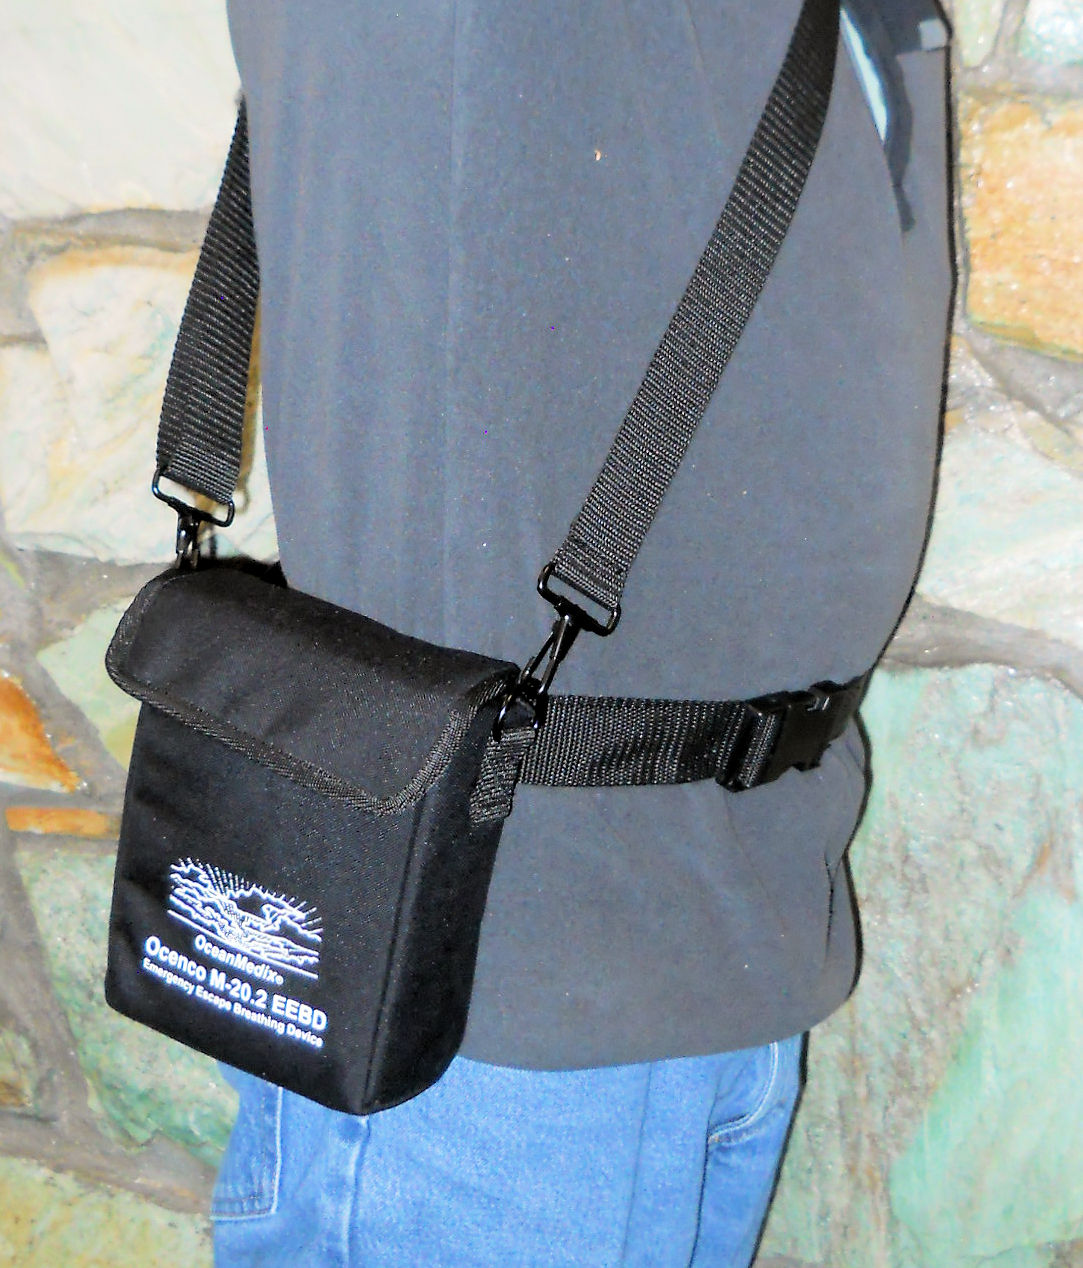 Utility Pouch for Ocenco M-20 Series EEBD - being worn